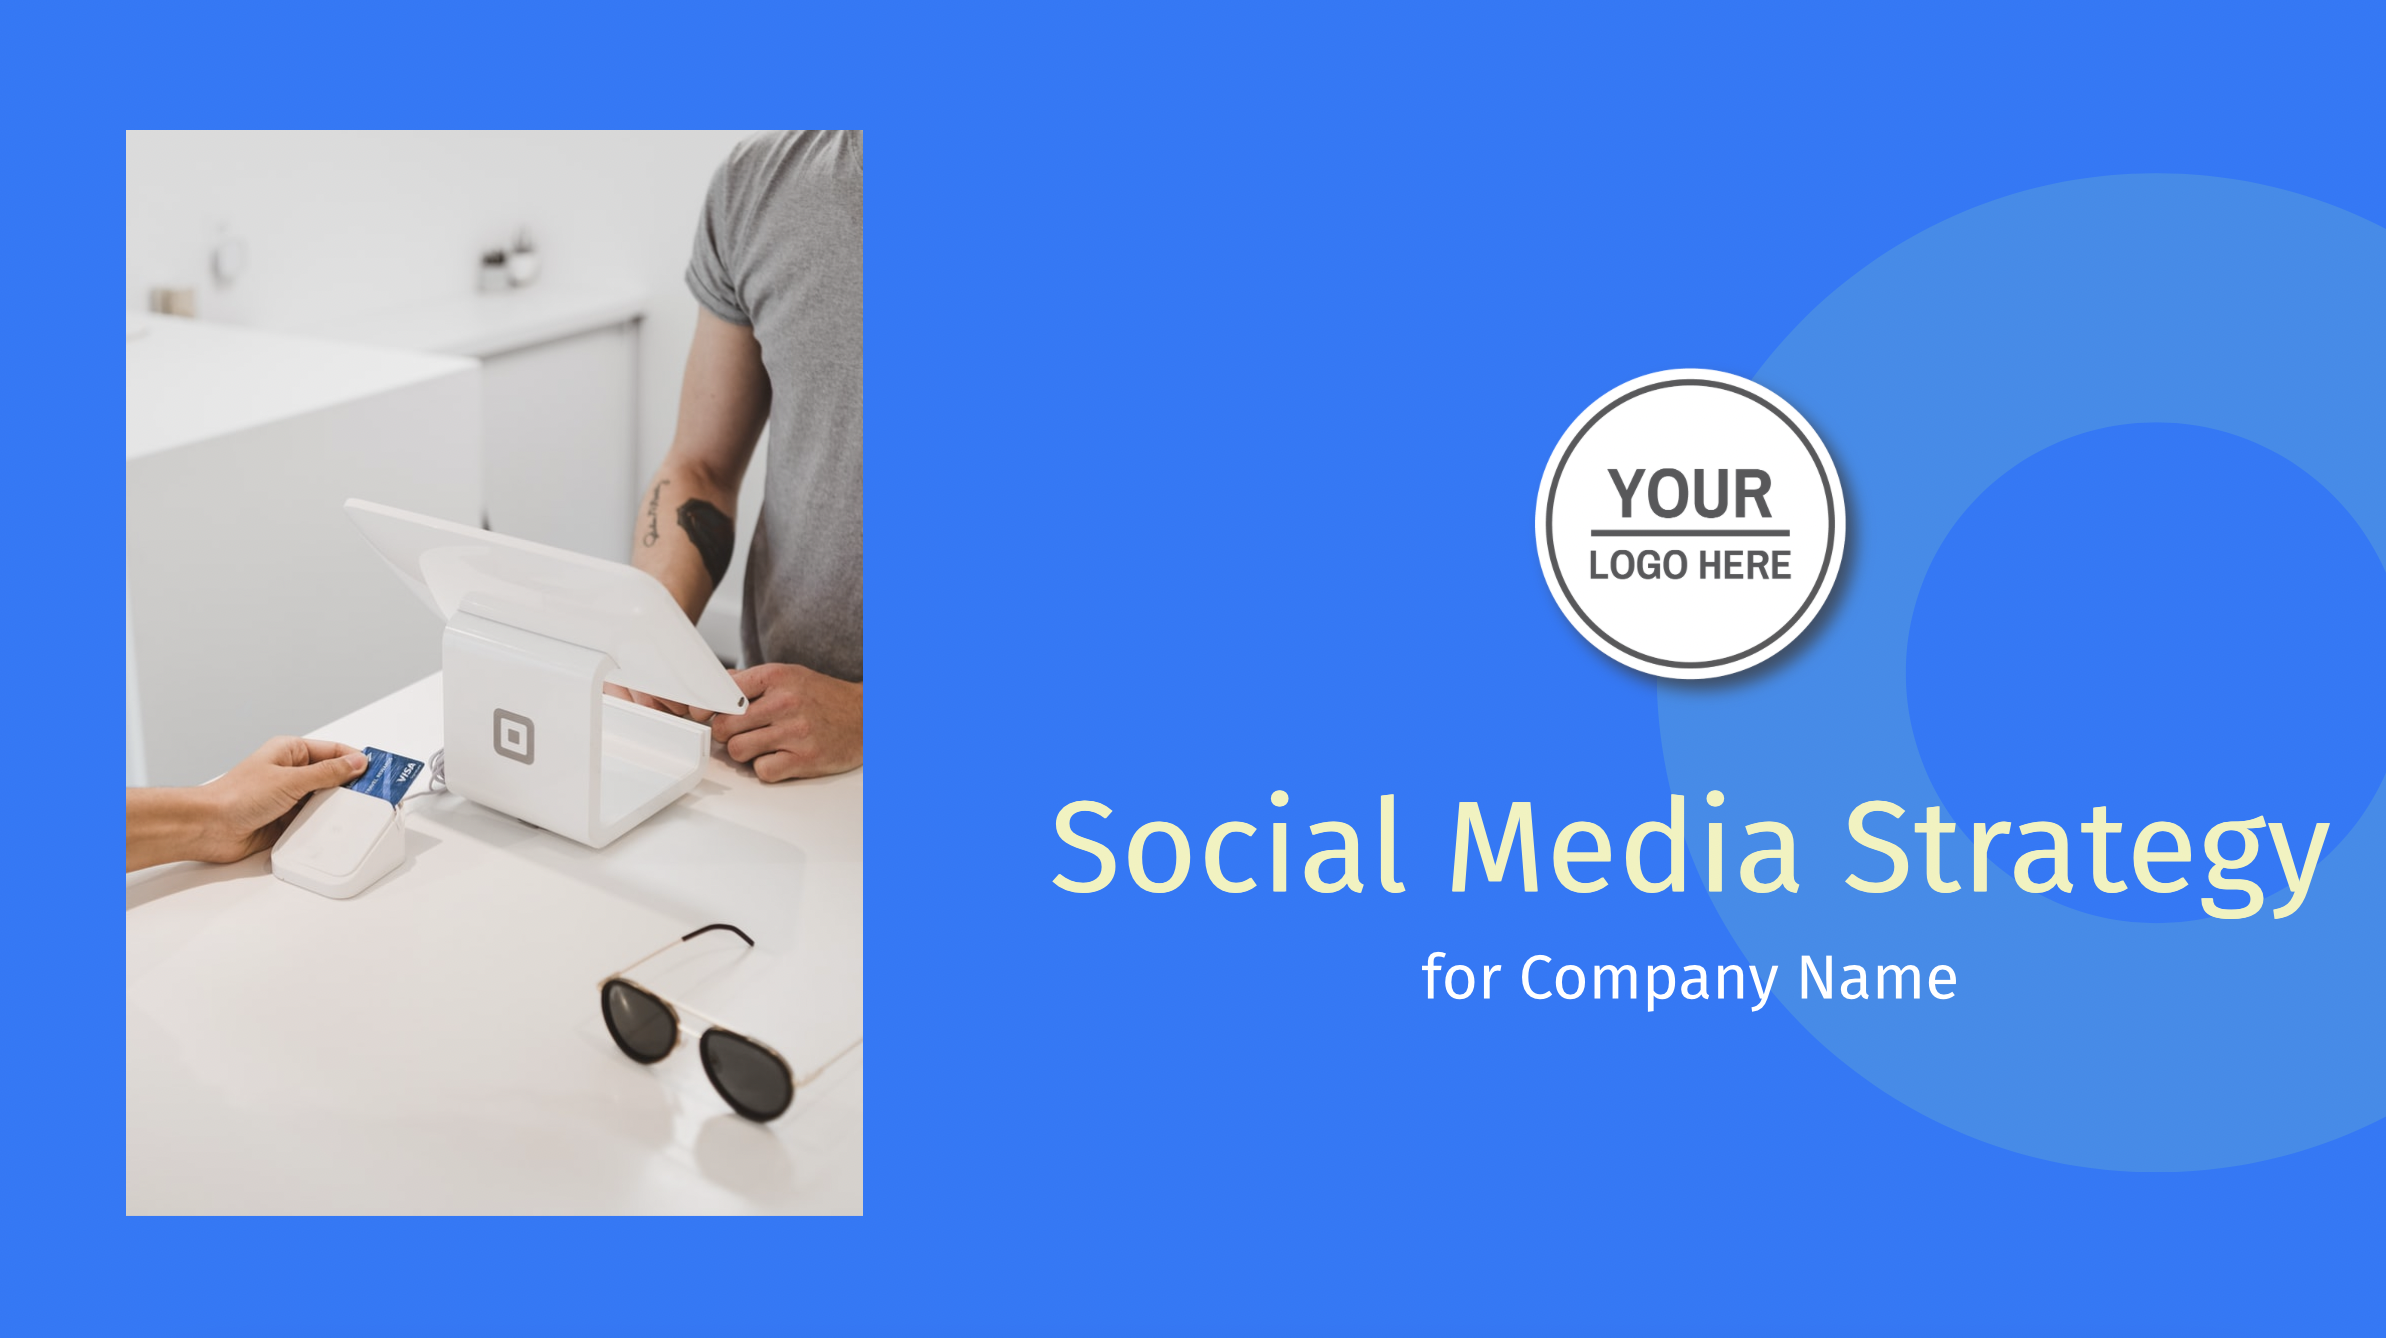 With your new social media content and strategy presentation coming up, you might want a handy social media strategy template on deck. Social media strategies include smart, measurable, attainable, relevant and time bound initiatives that your business should prioritize to boost conversions and increase brand awareness. Understand your audience persona, your unique value proposition, tone of voice, and how you will deliver your message through various social media platforms such as Instagram, LinkedIn, Twitter, Pinterest, Youtube, Facebook, Tiktok and more.